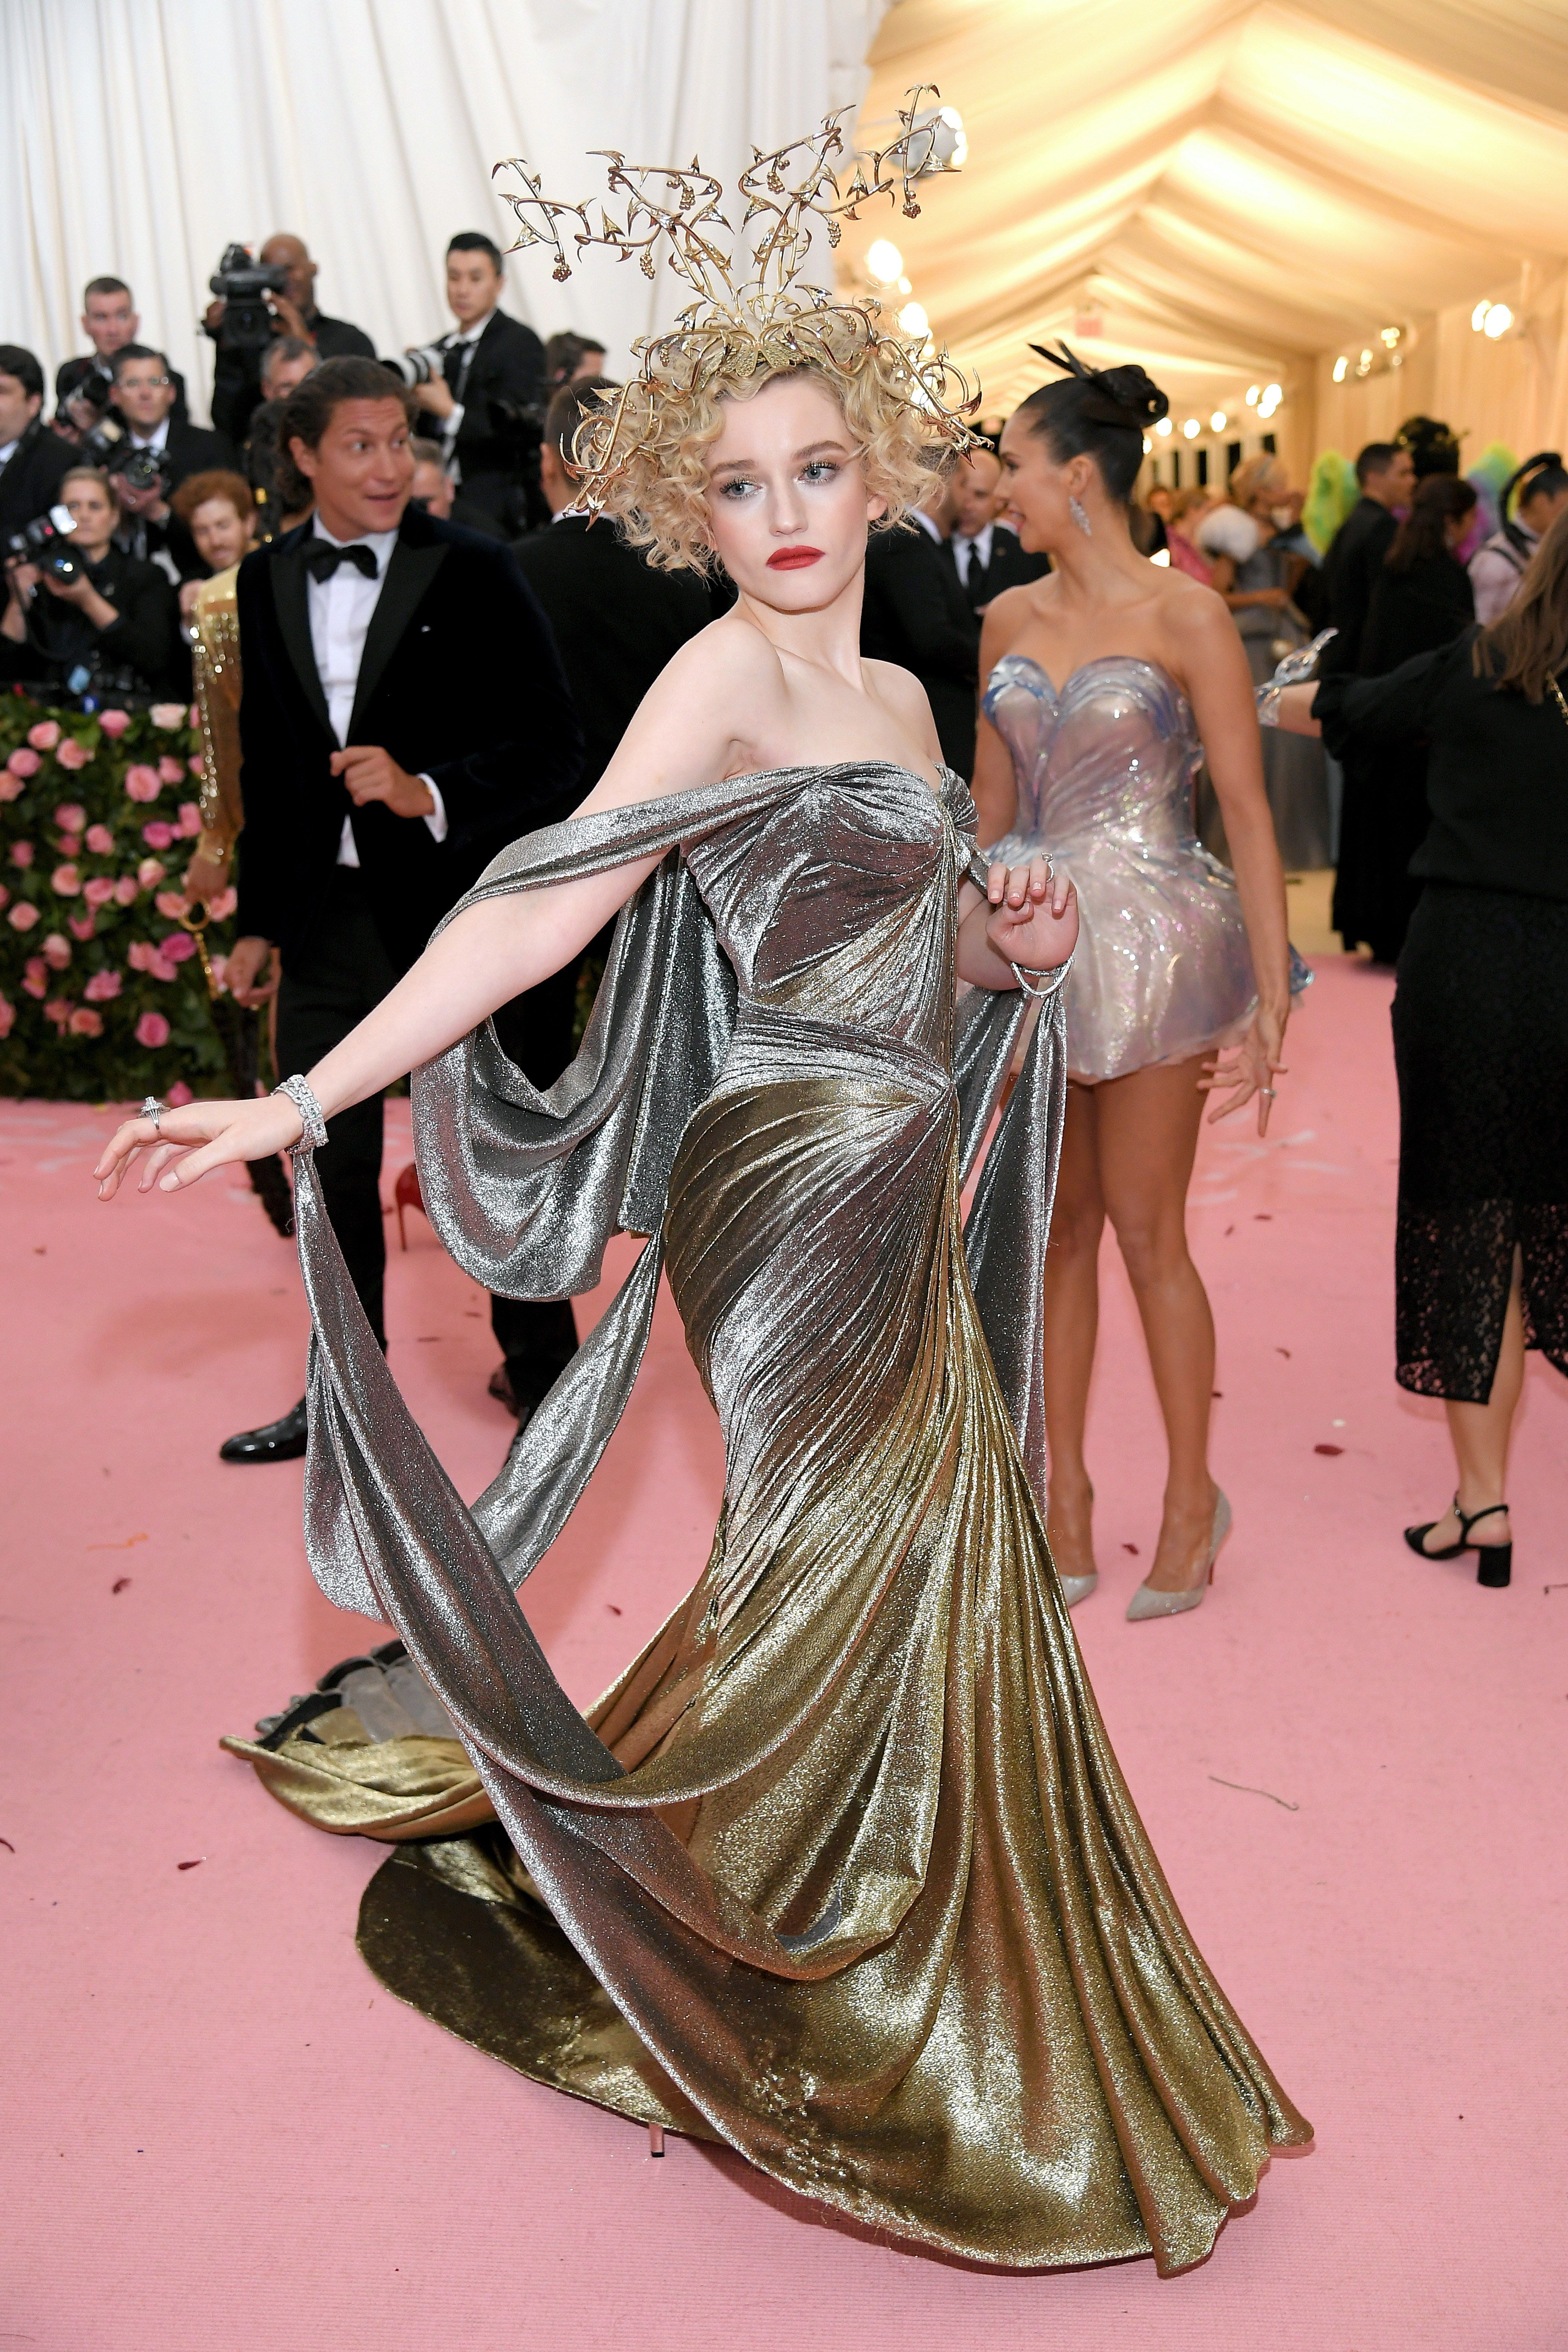 b070c561f398d The Met Gala 2019 is fashion's biggest night. See every red carpet look  from your favorite celebrities and designers at the Metropolitan Museum of  Art.